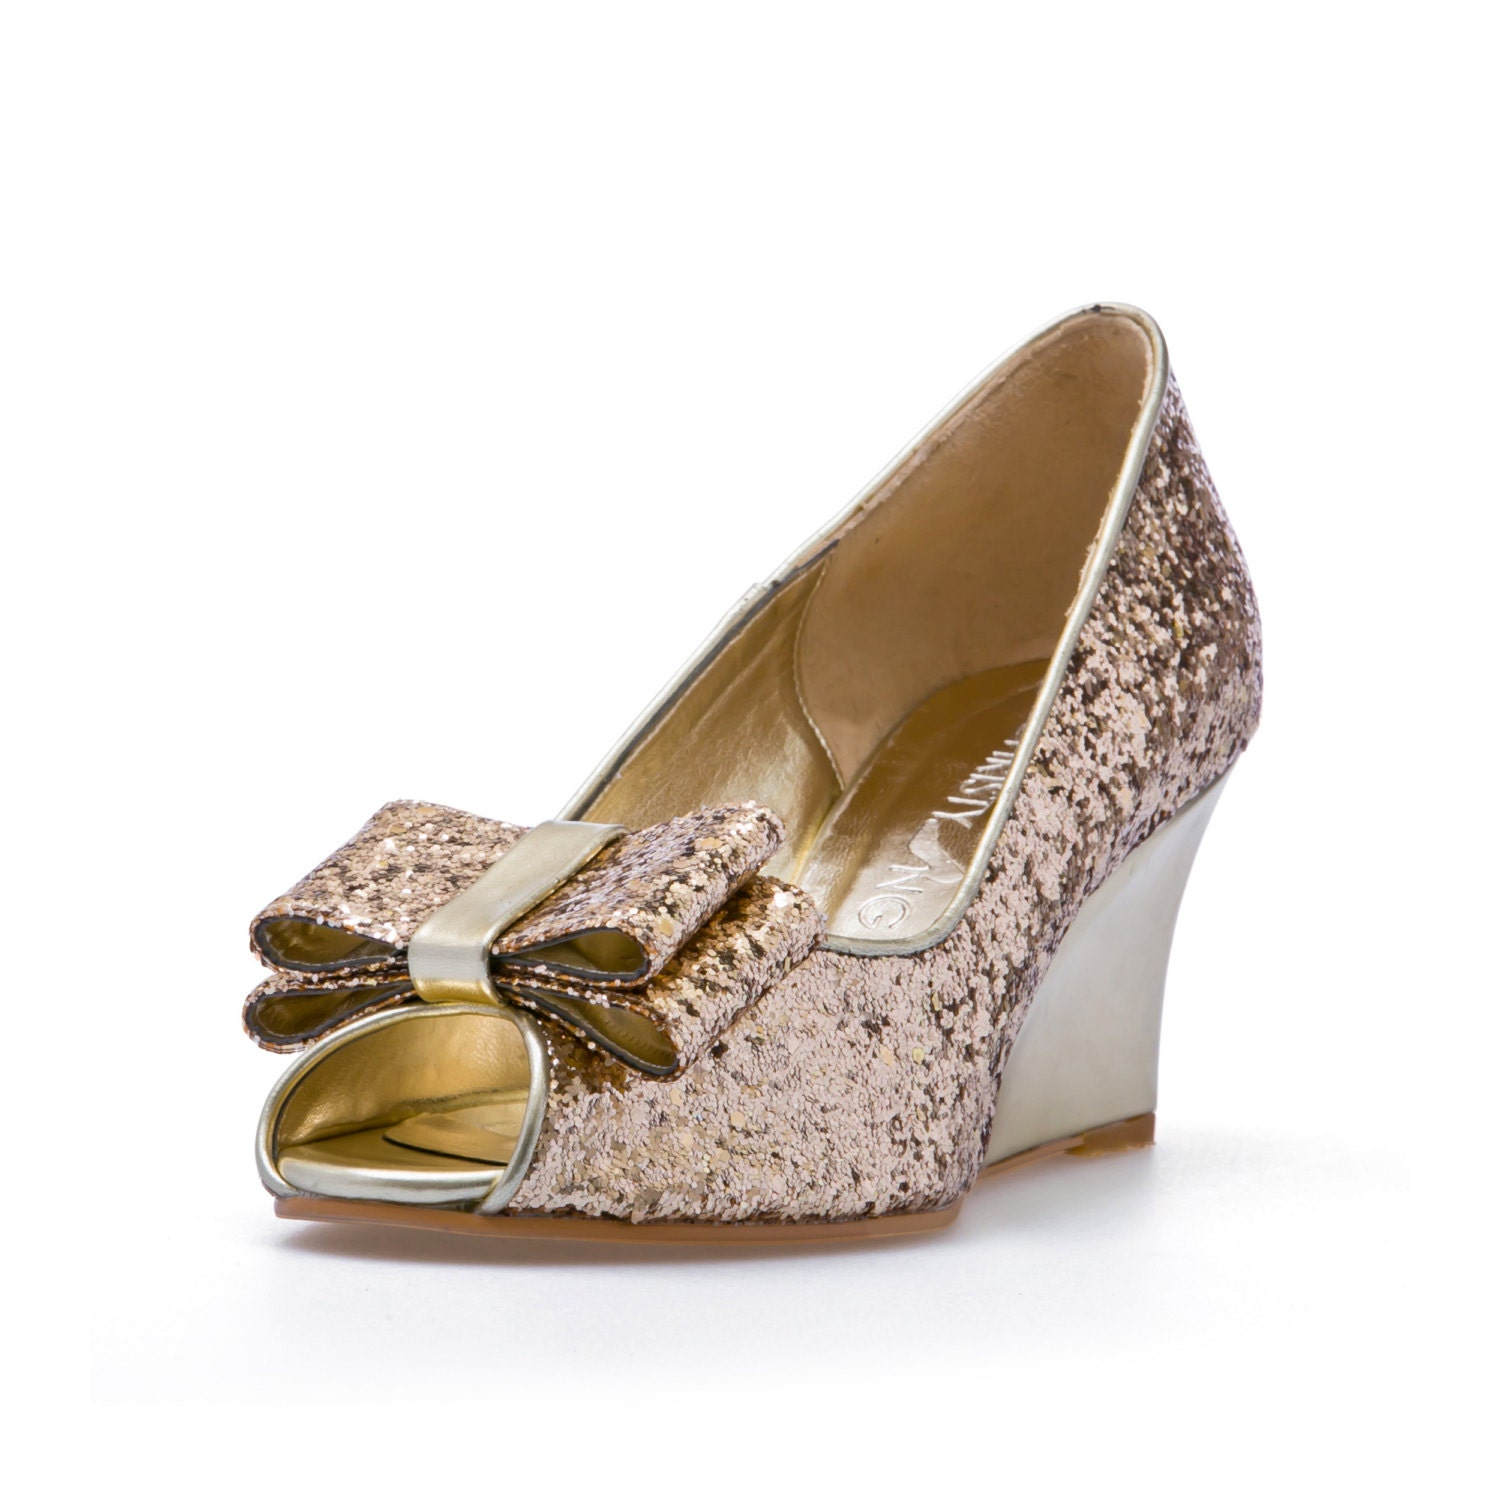 ashley gold glitter wedges wedding shoes wedding shoes wedges zoom